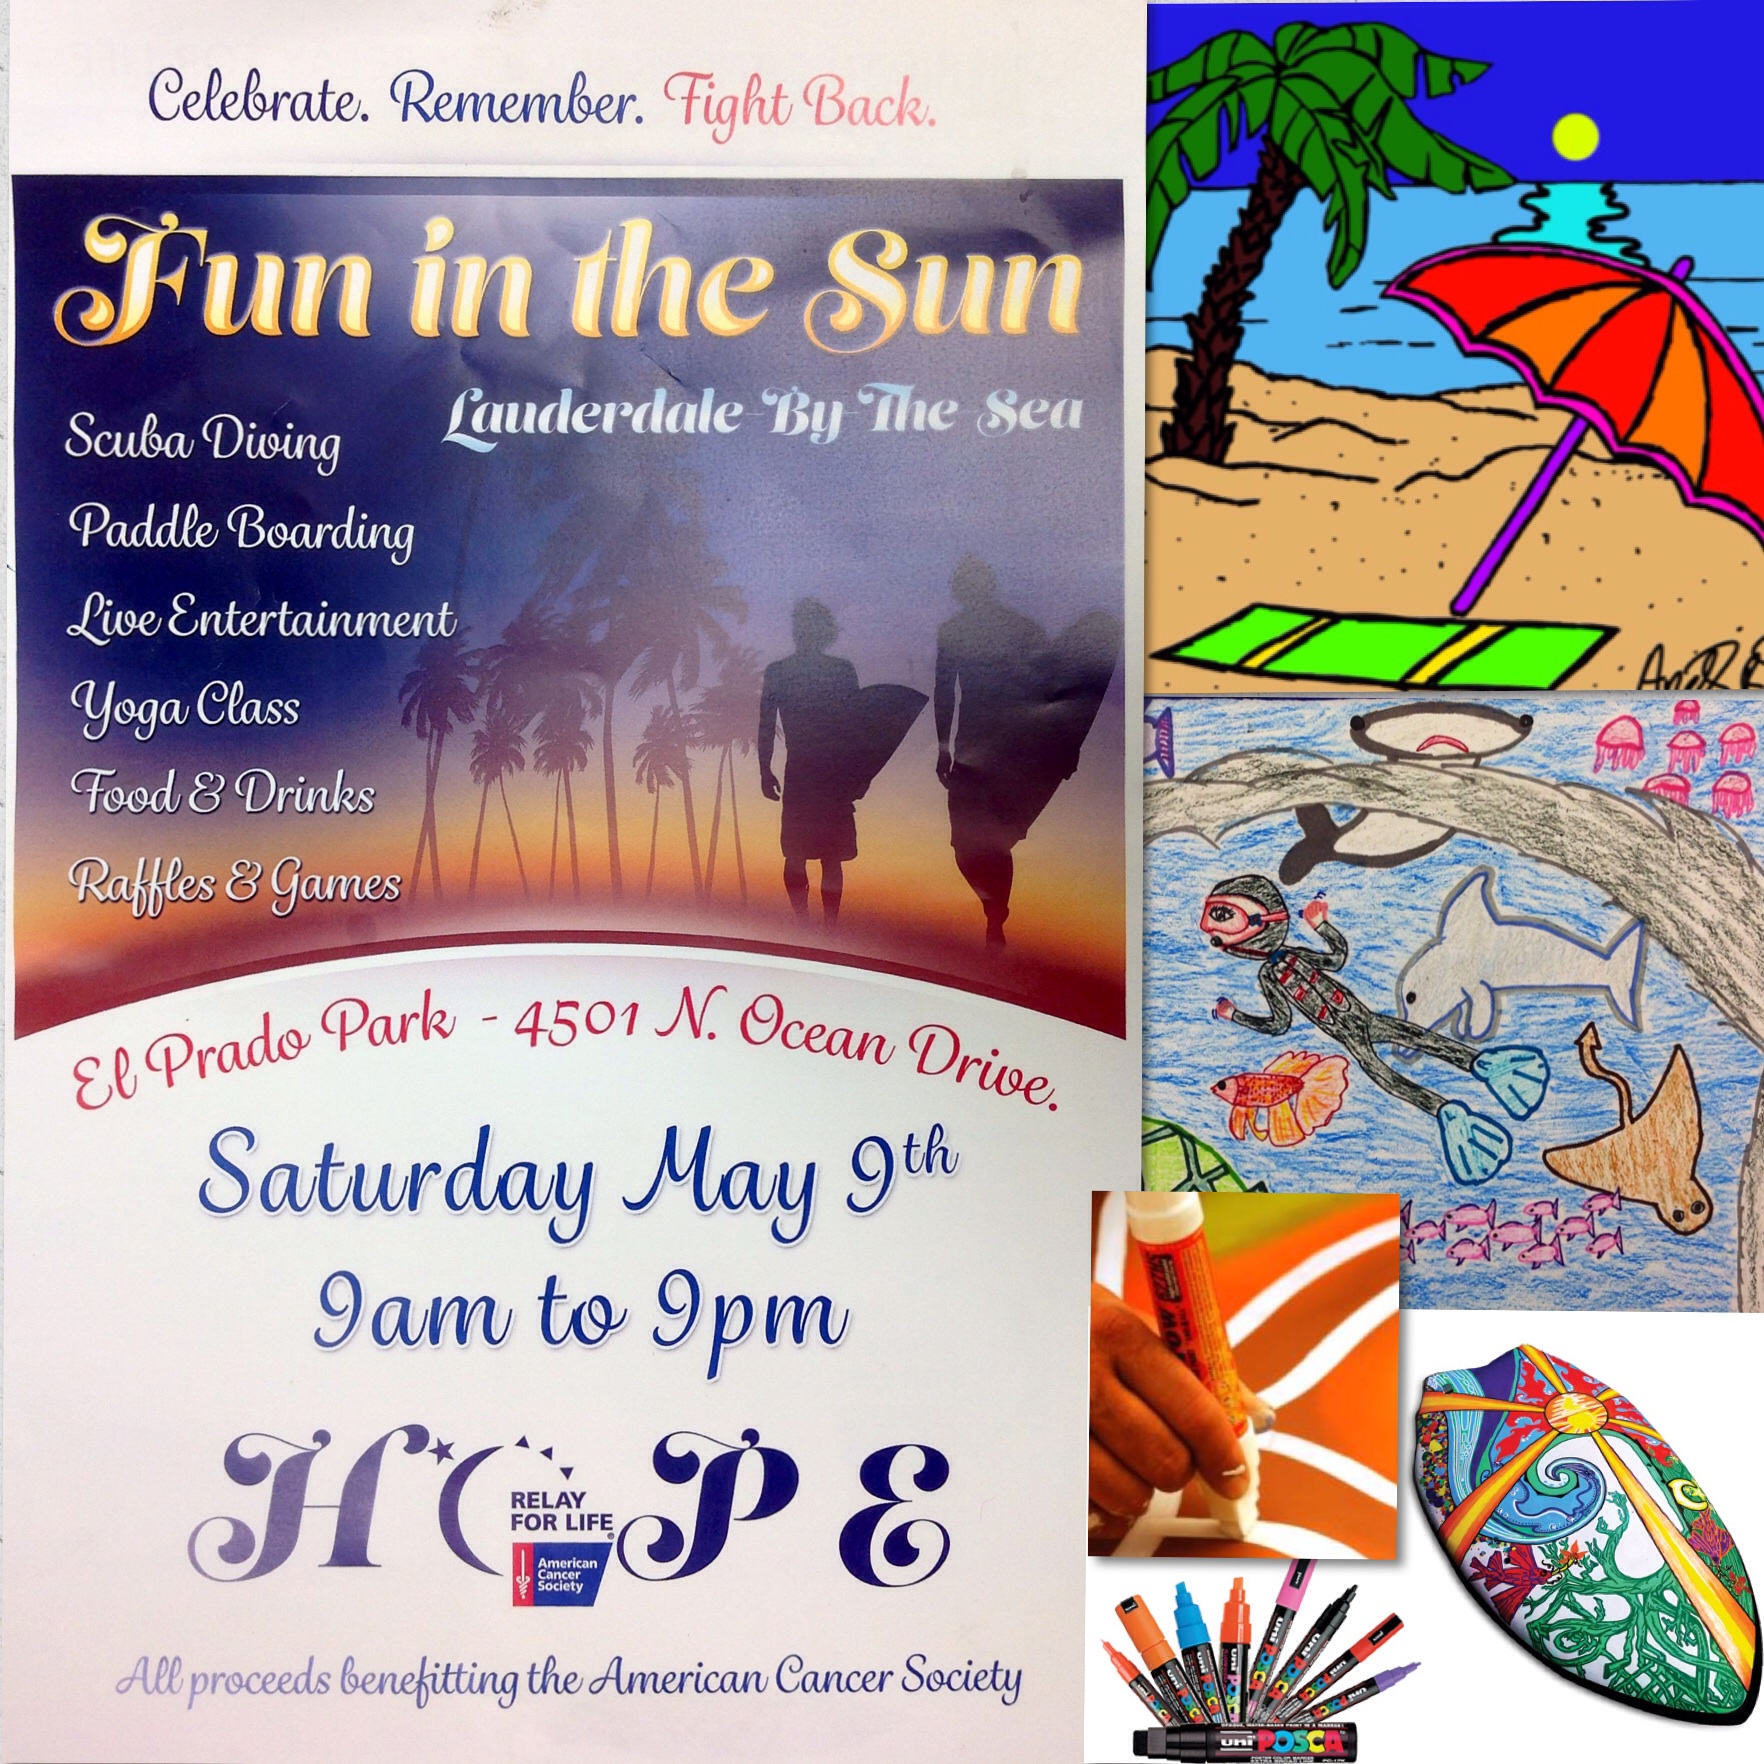 May 9th lauderdale by the Sea